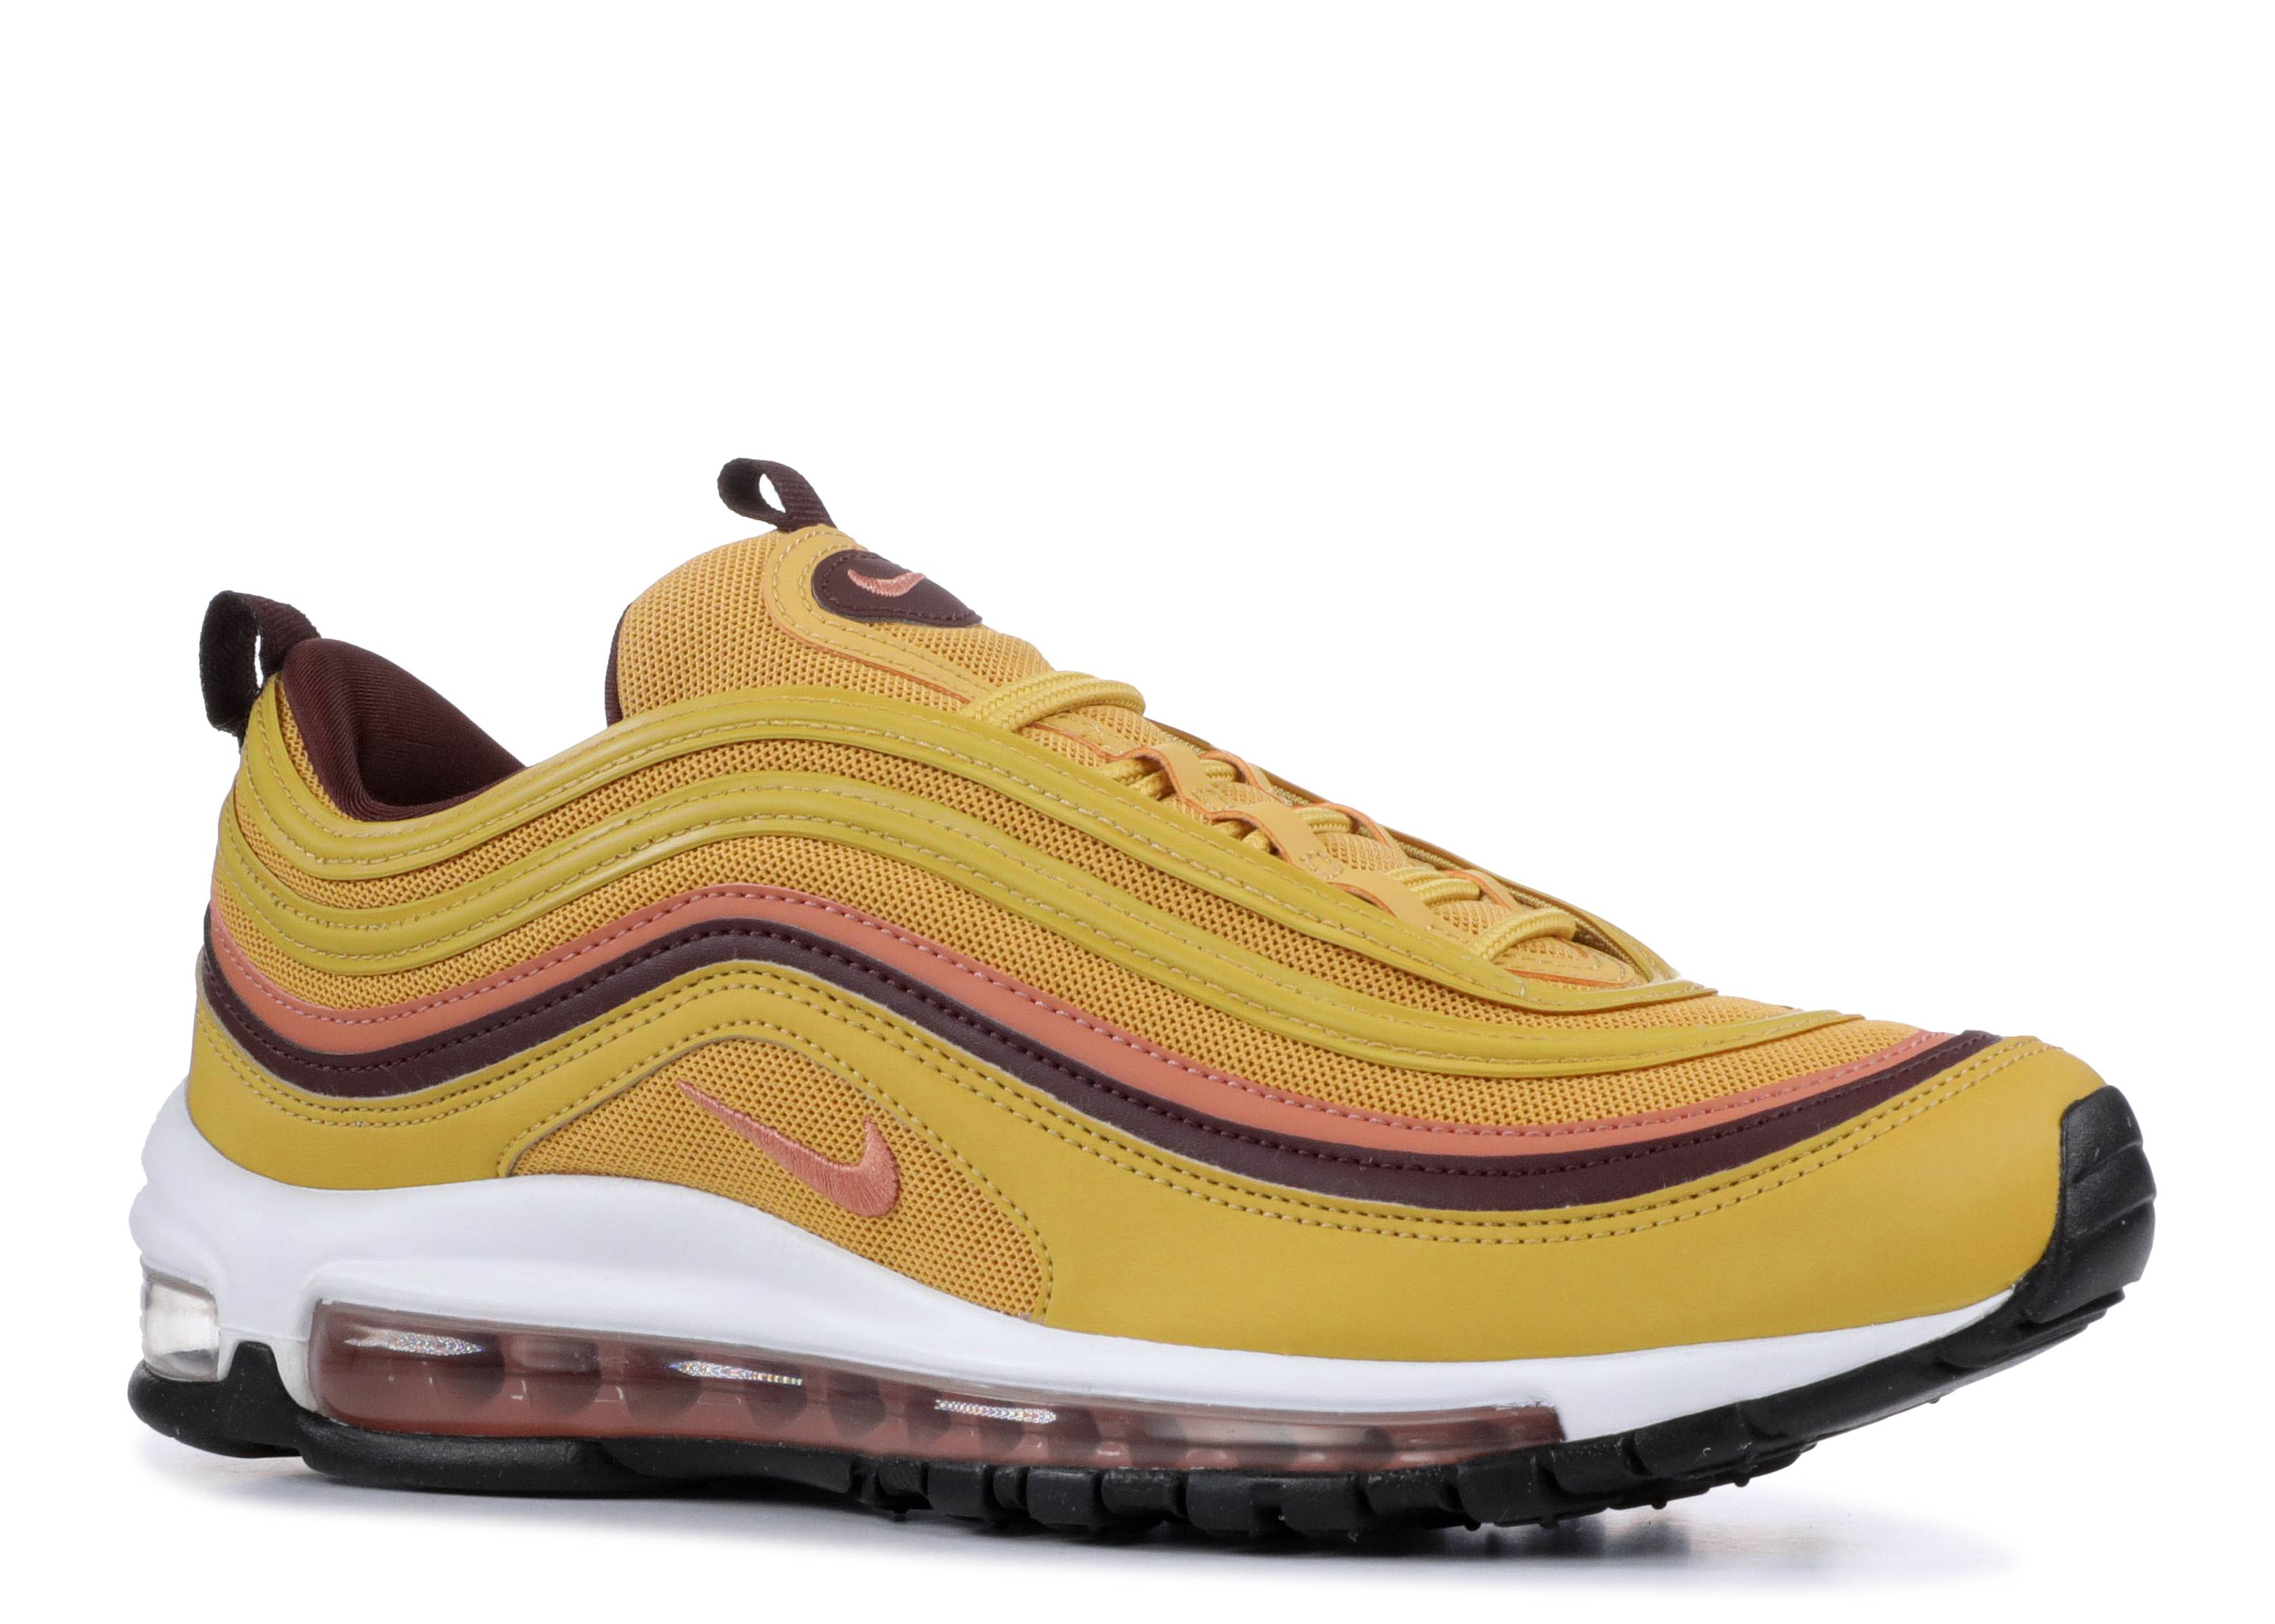 Nike Wmns Air Max 97 Wheat Gold